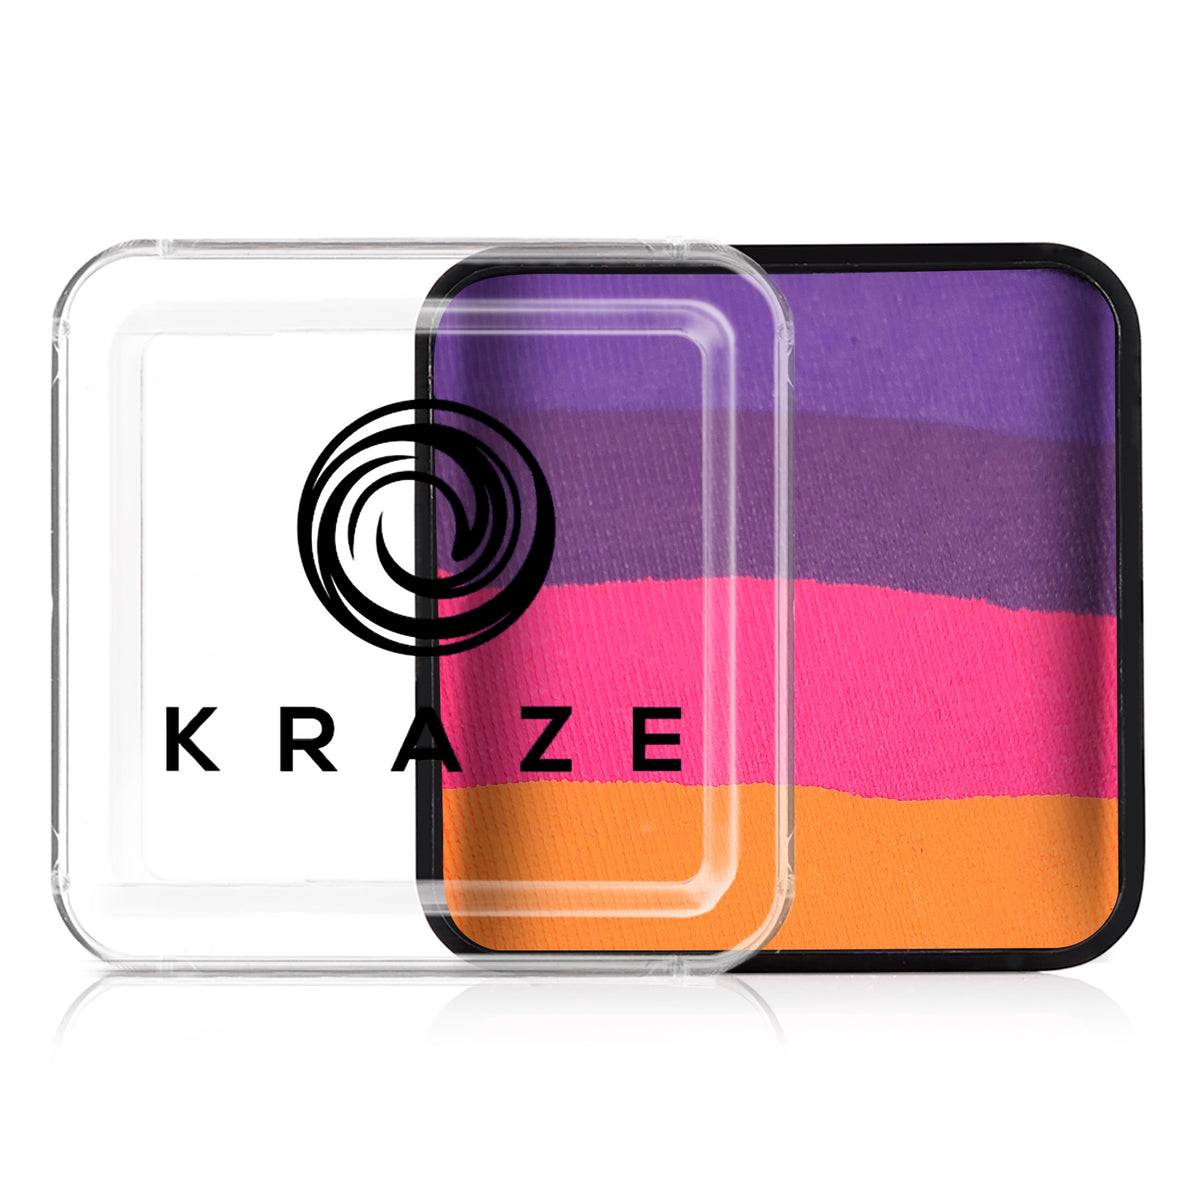 Kraze Dome Cake - Cheer (25 gm)